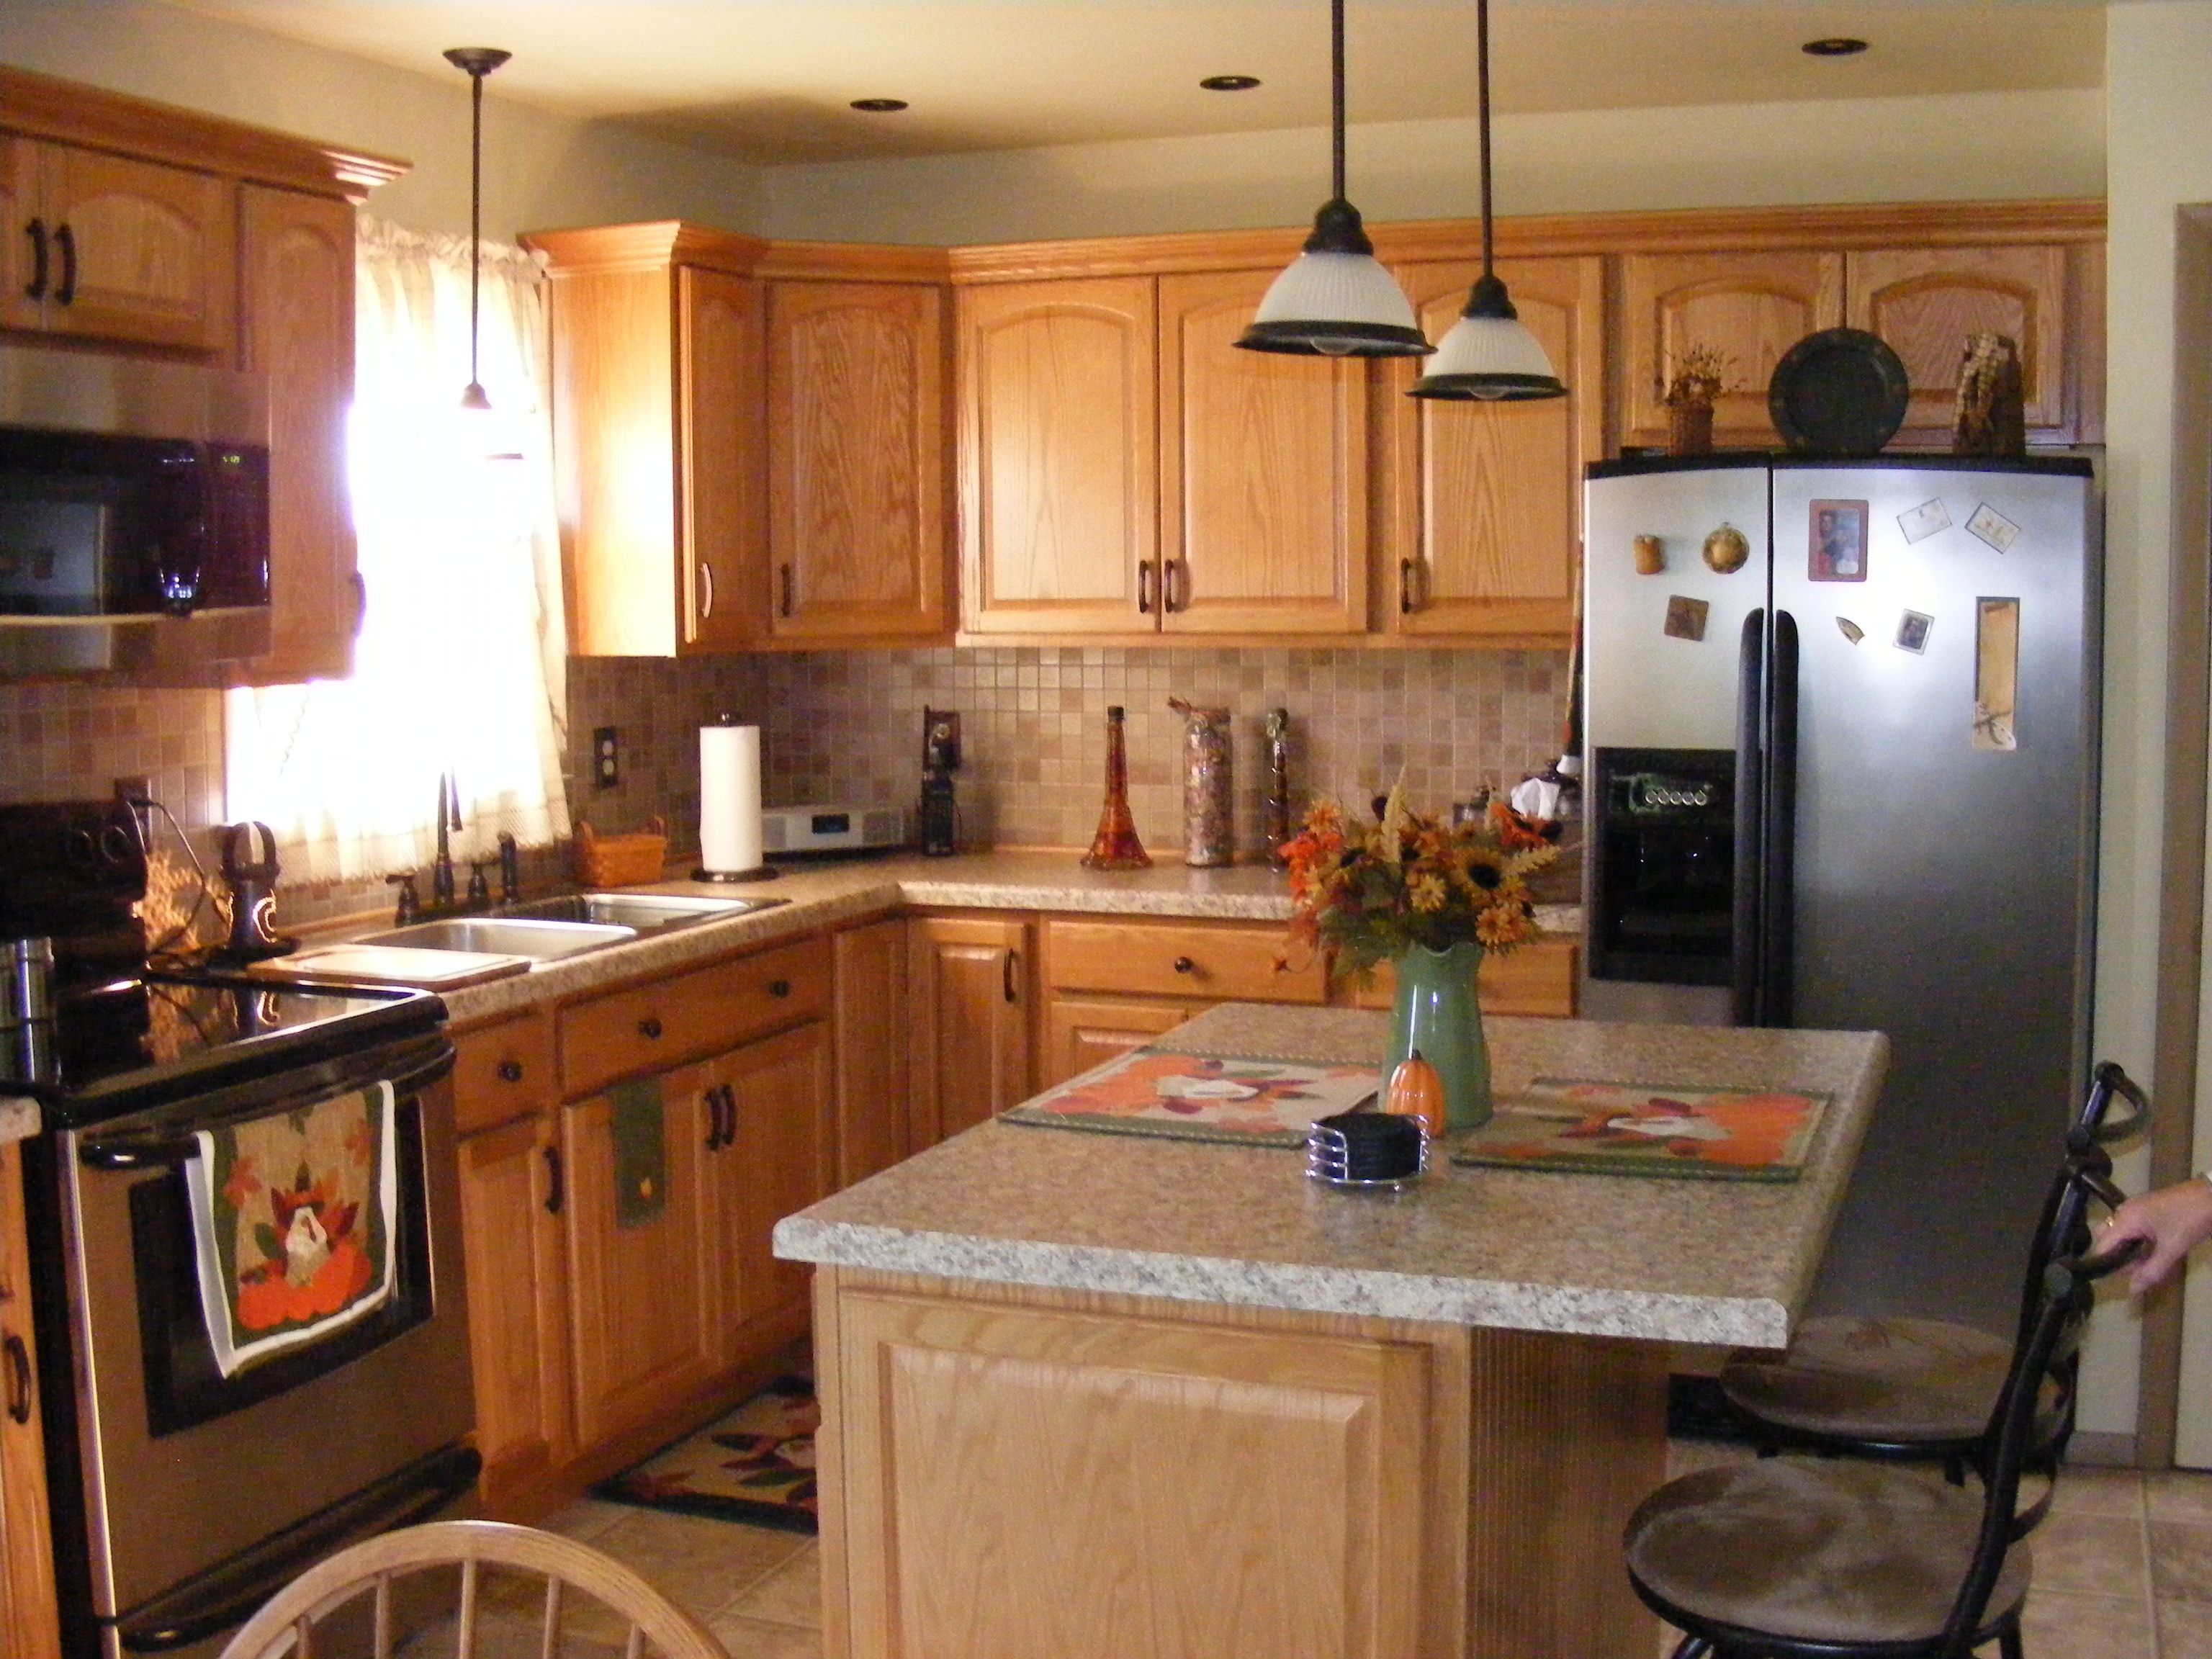 Golden Oak Kitchen, Tile Backsplash, Warm Colors